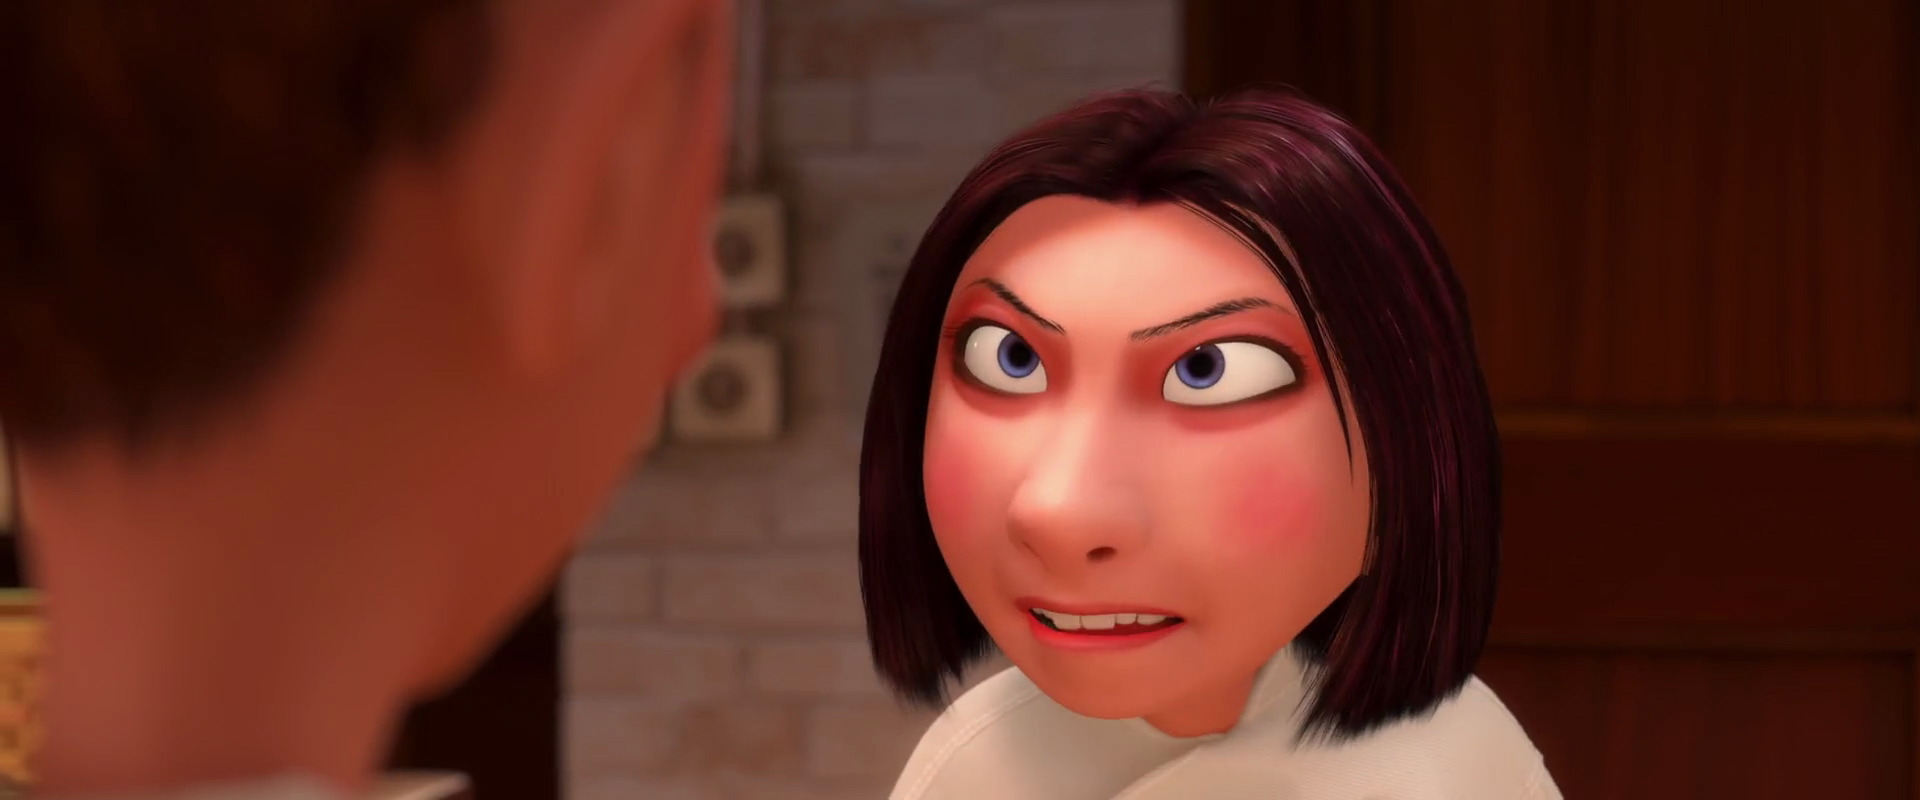 "Colette Tatou, character from ""Ratatouille"". 